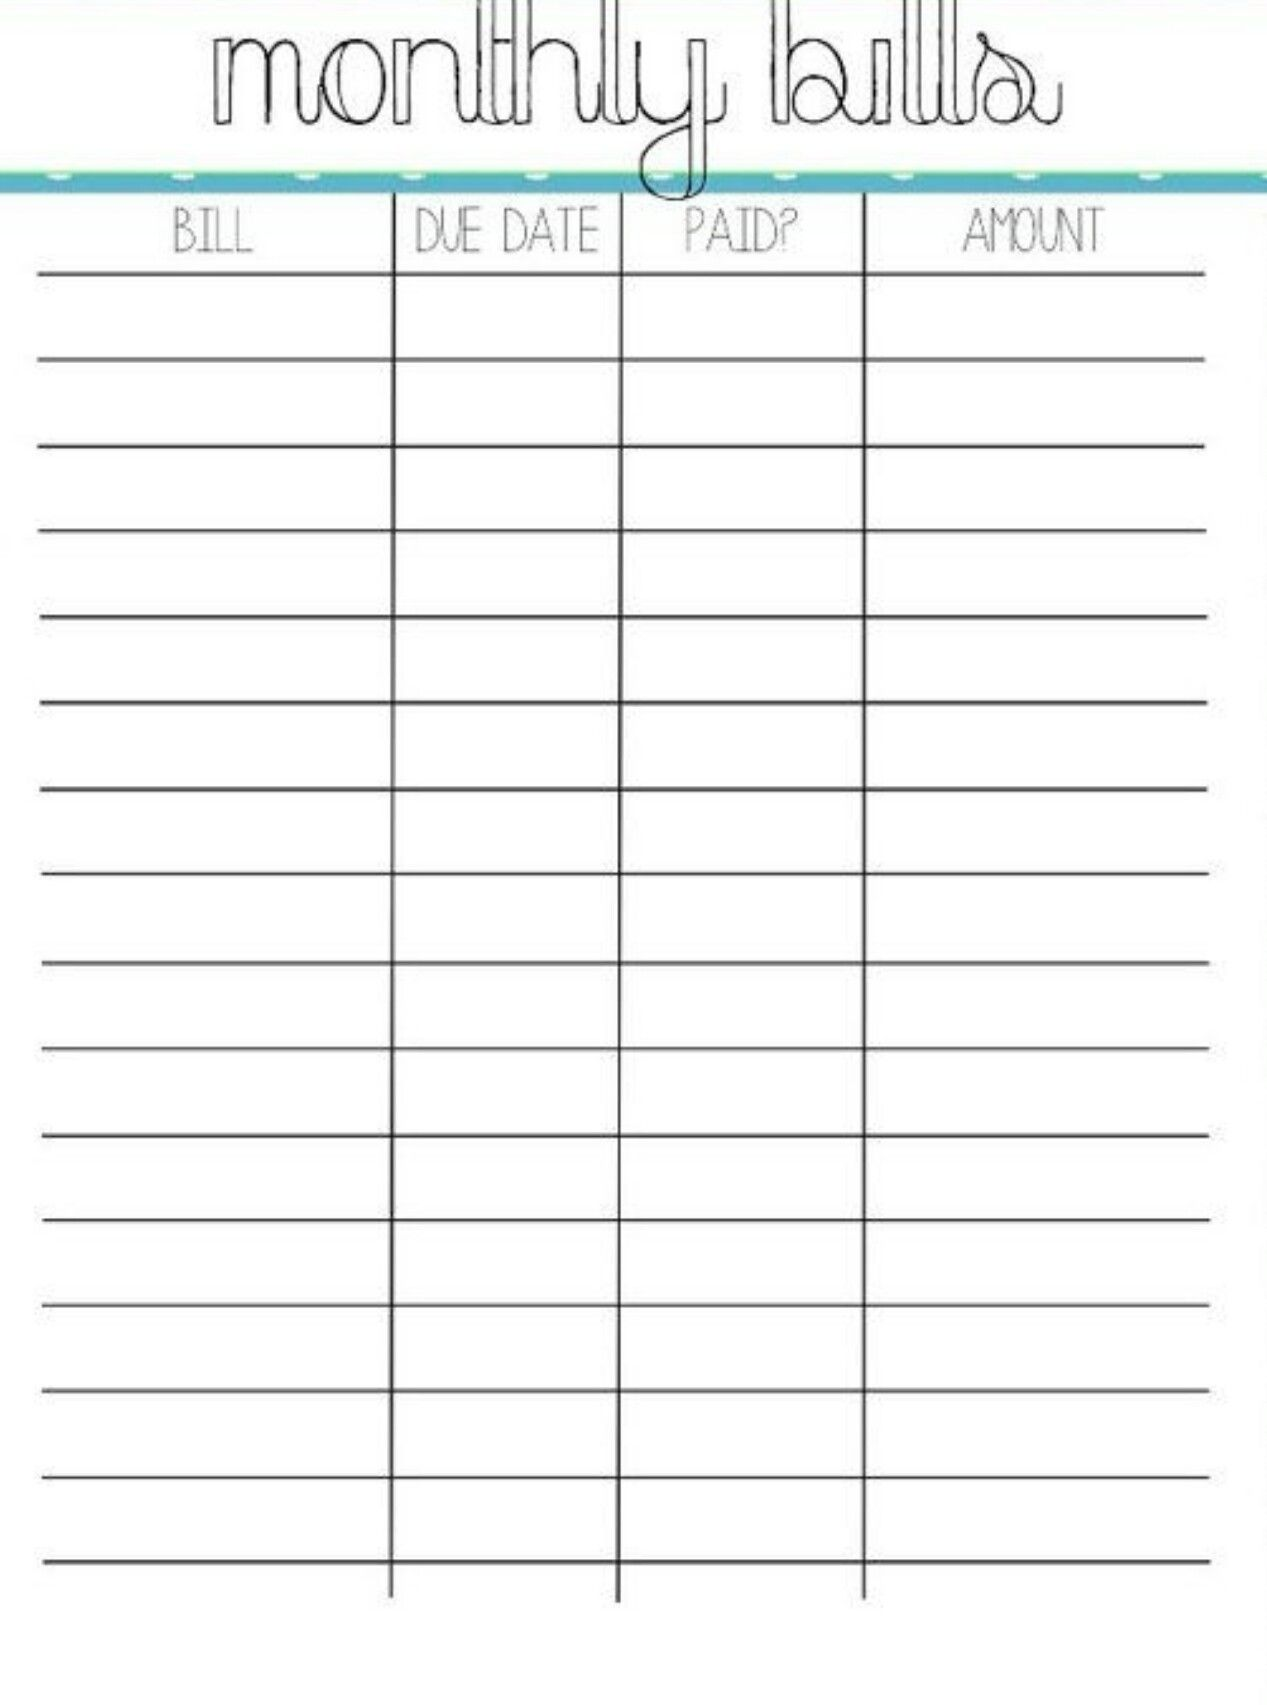 photo relating to Printable Monthly Bill Organizer Download titled Pin through Crystal upon costs Arranging regular monthly costs, Monthly bill